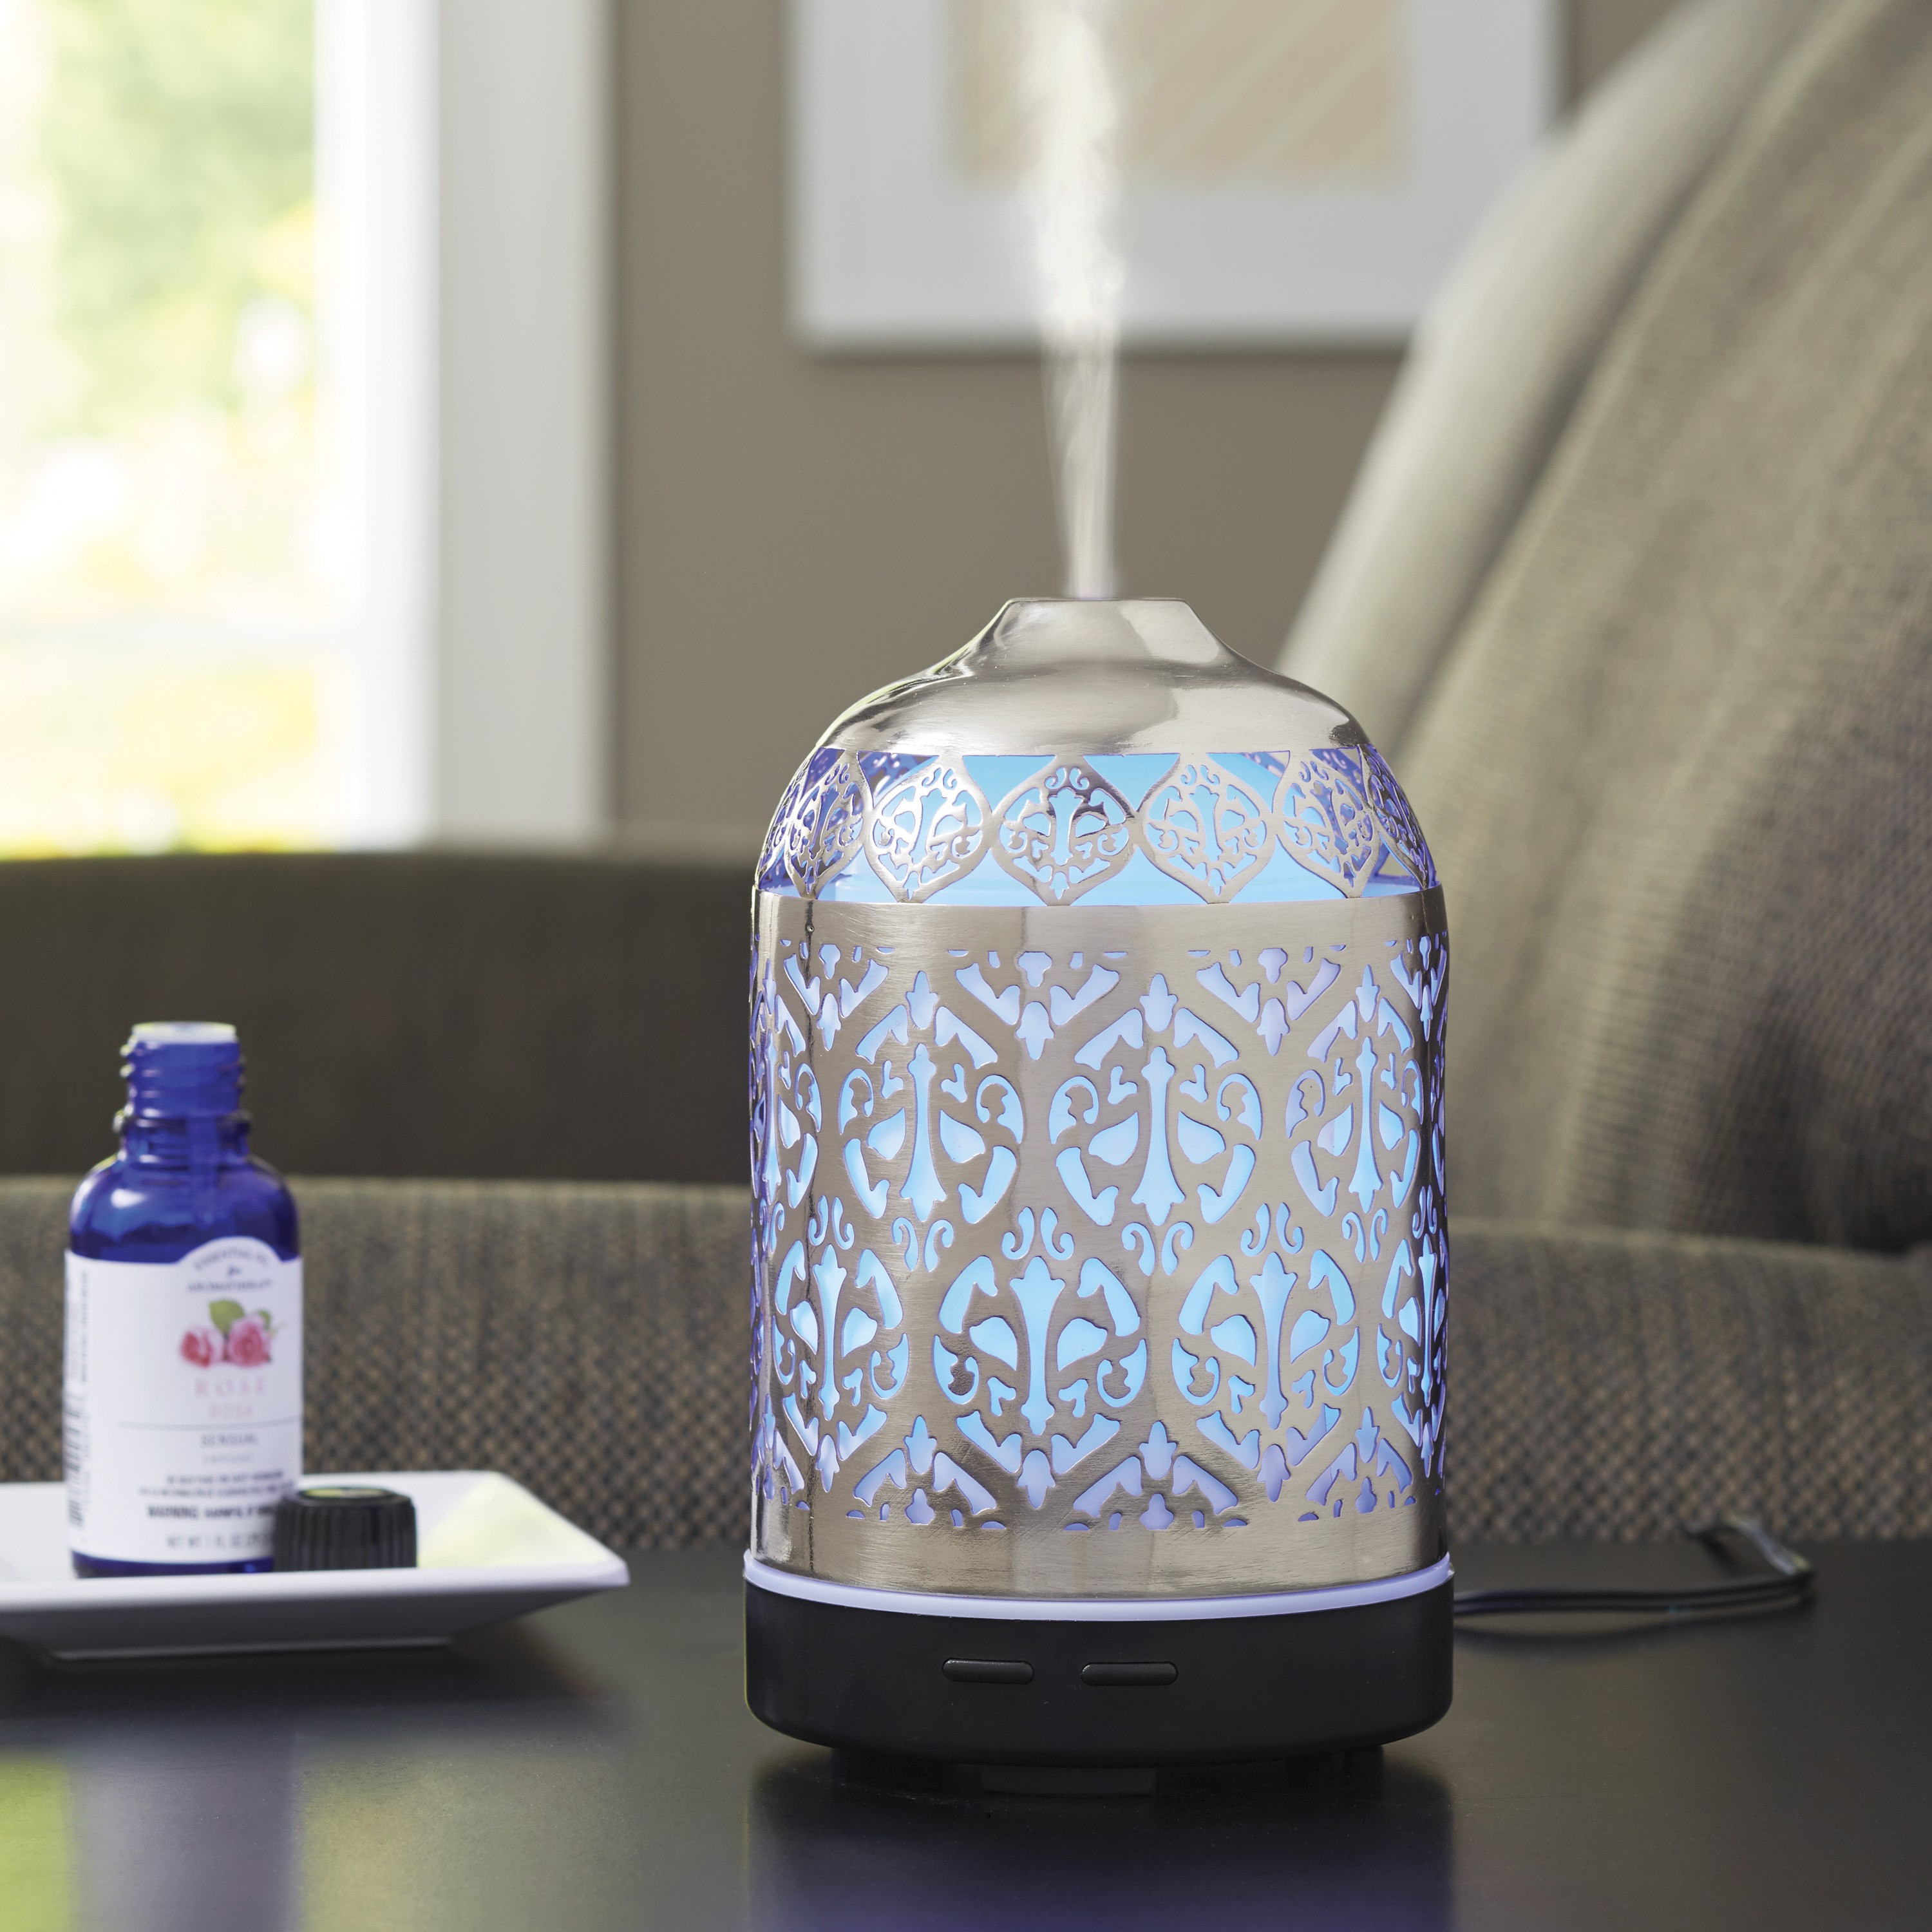 Better Homes And Gardens Essential Oil Diffuser